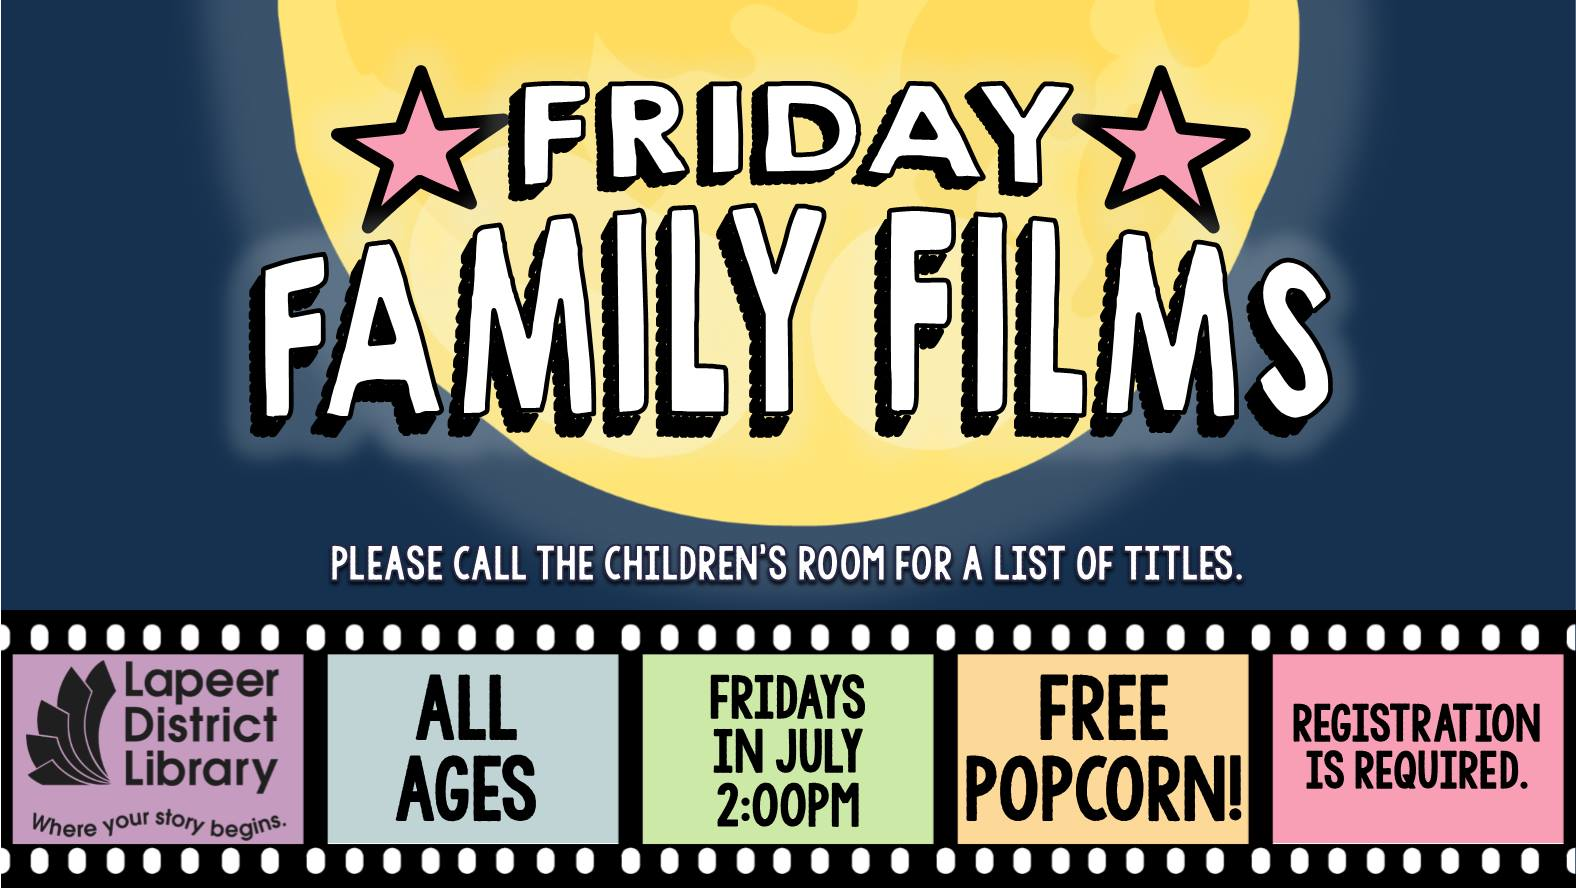 Family Film Fridays